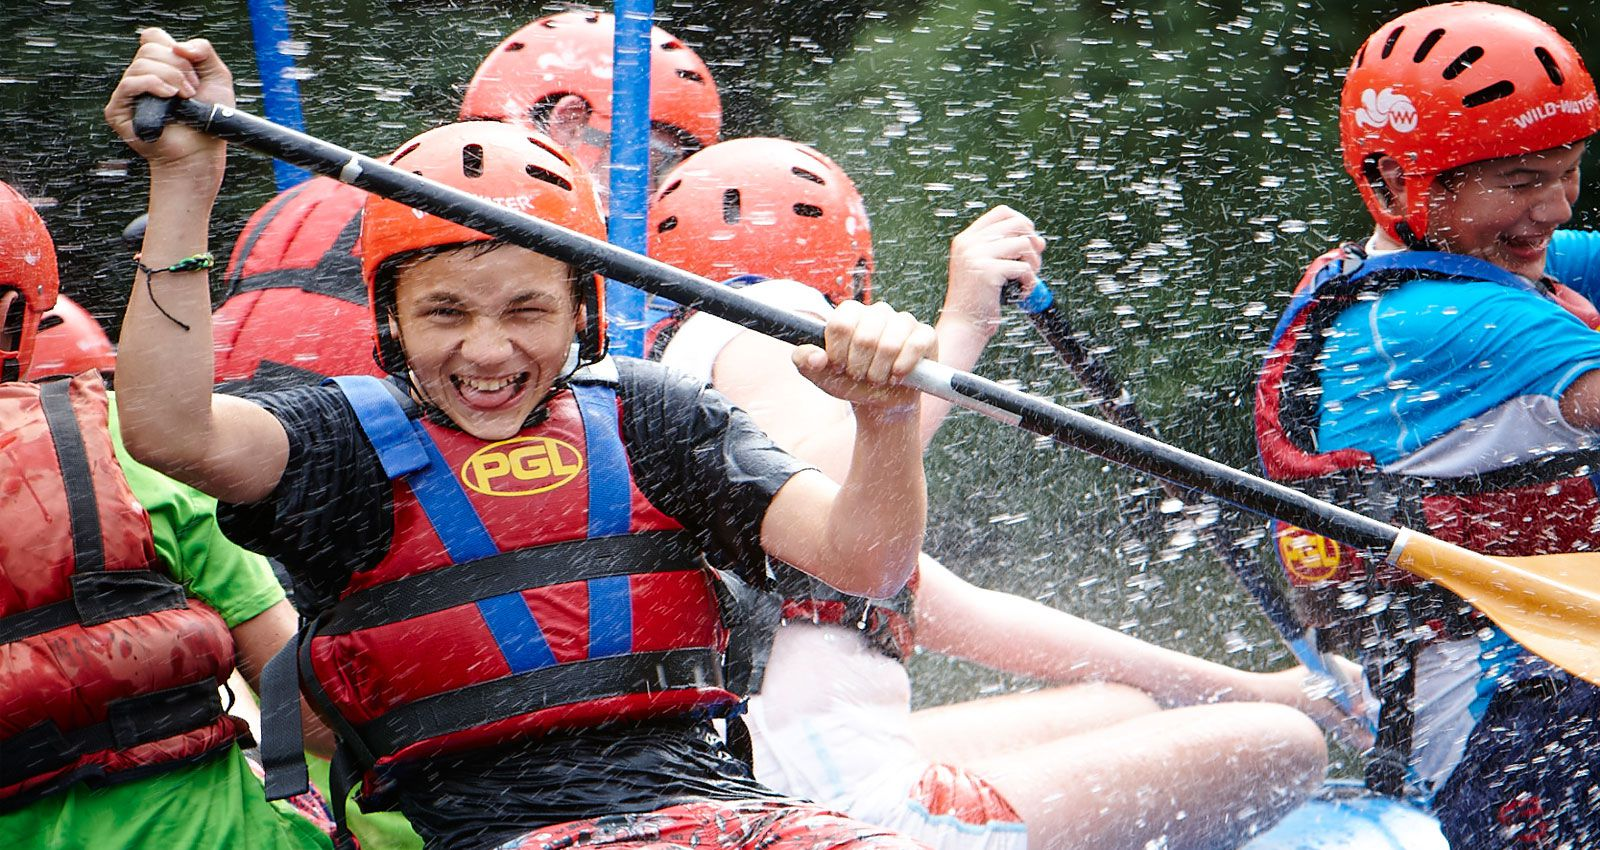 PGL Adventure Holidays - Specialist Holidays for 7-17 year olds across the UK - Action and Adventure - Adrenaline Adventure